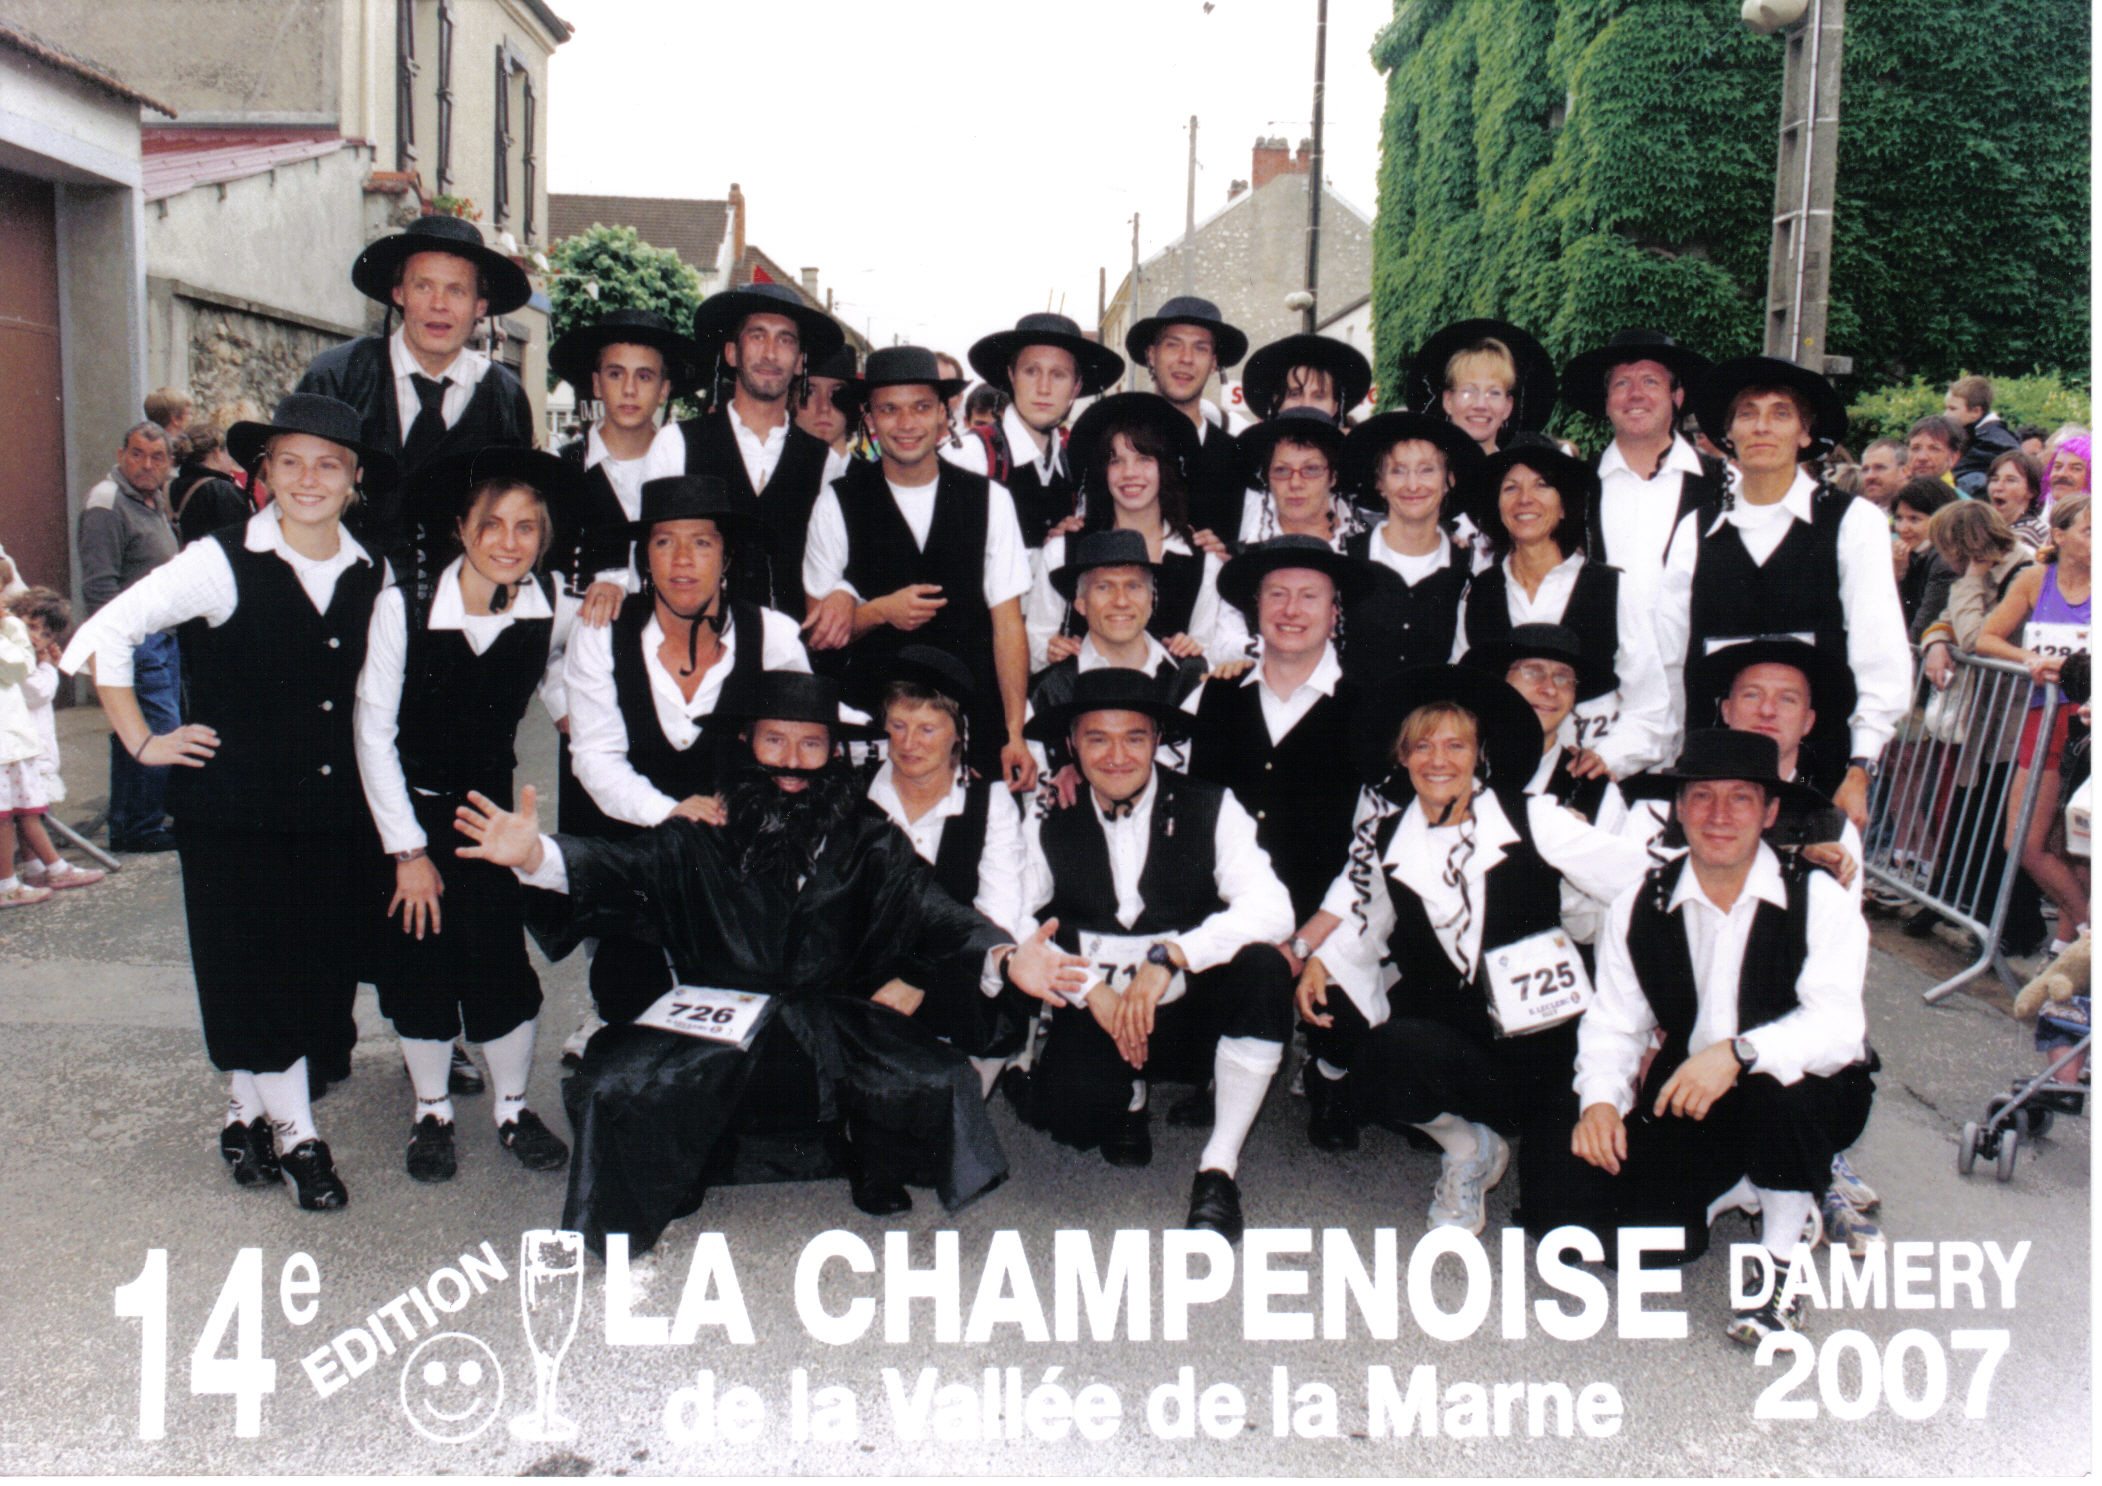 champenoise 2007 Photo Officille